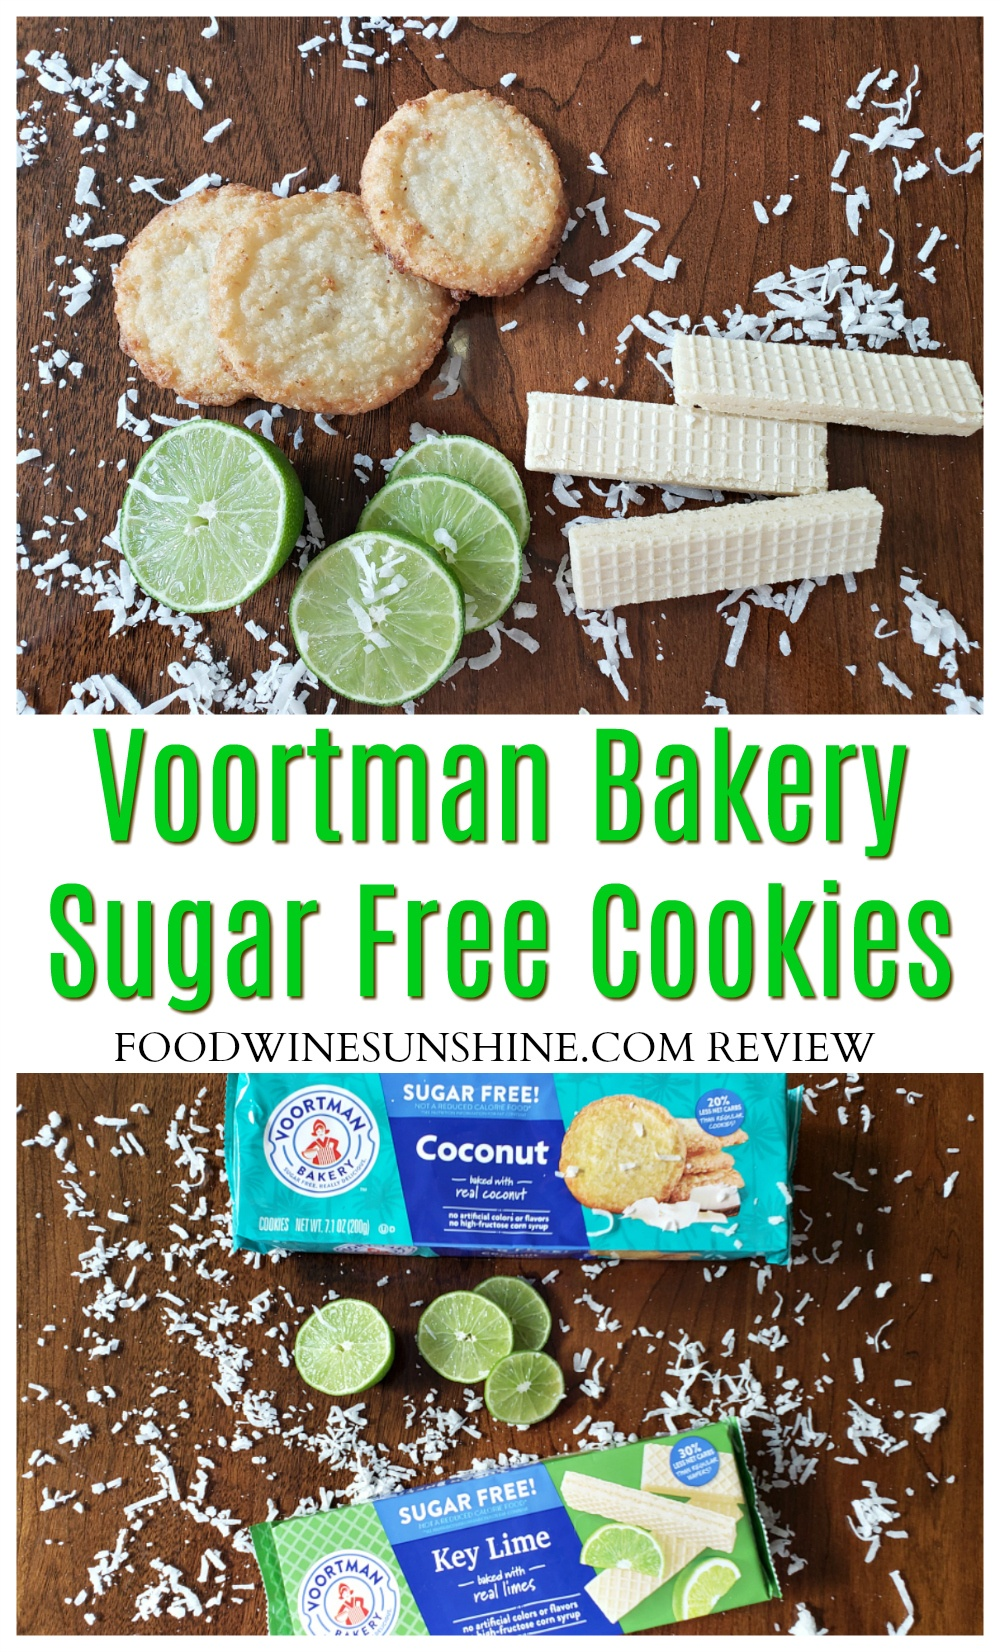 Voortman Bakery Sugar Free Cookies | You can find the two new flavors of Voortman Sugar Free Cookies and Wafers at your favorite retailers. Get a taste of the tropics with Voortman Bakery sugar free key lime wafers and sugar free coconut cookies.